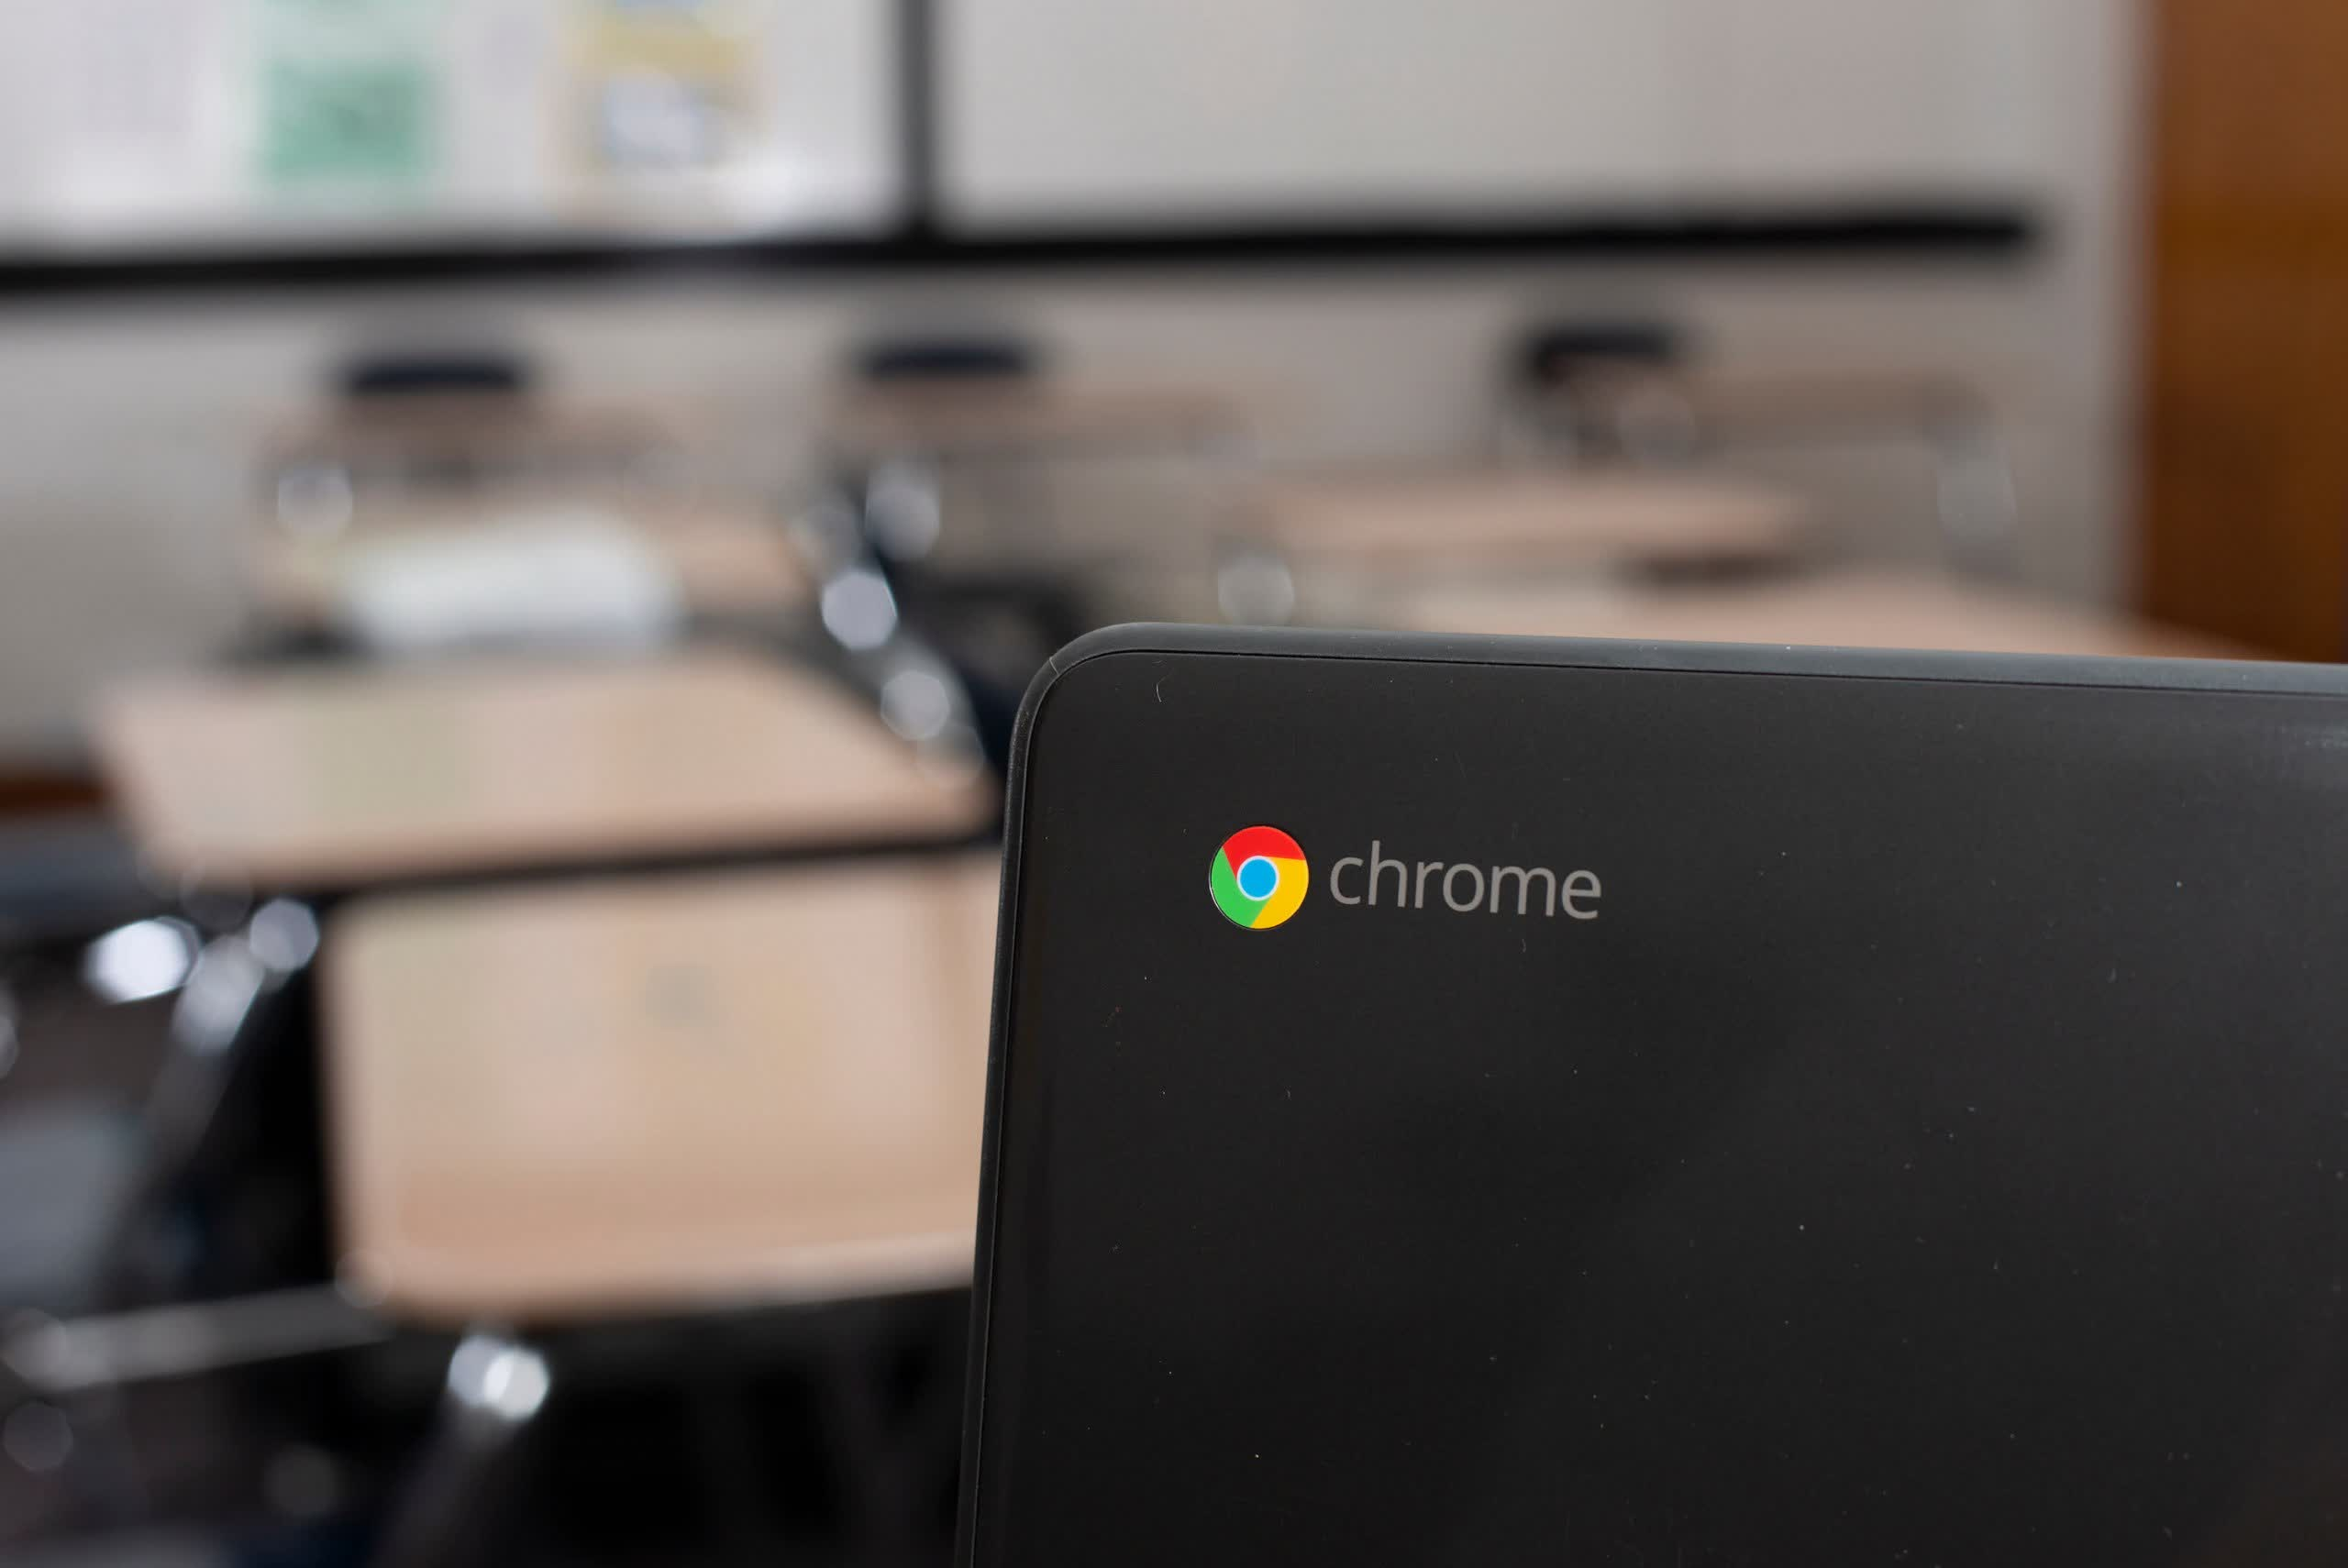 Chrome OS overtakes Macs for second place OS market share for the first time